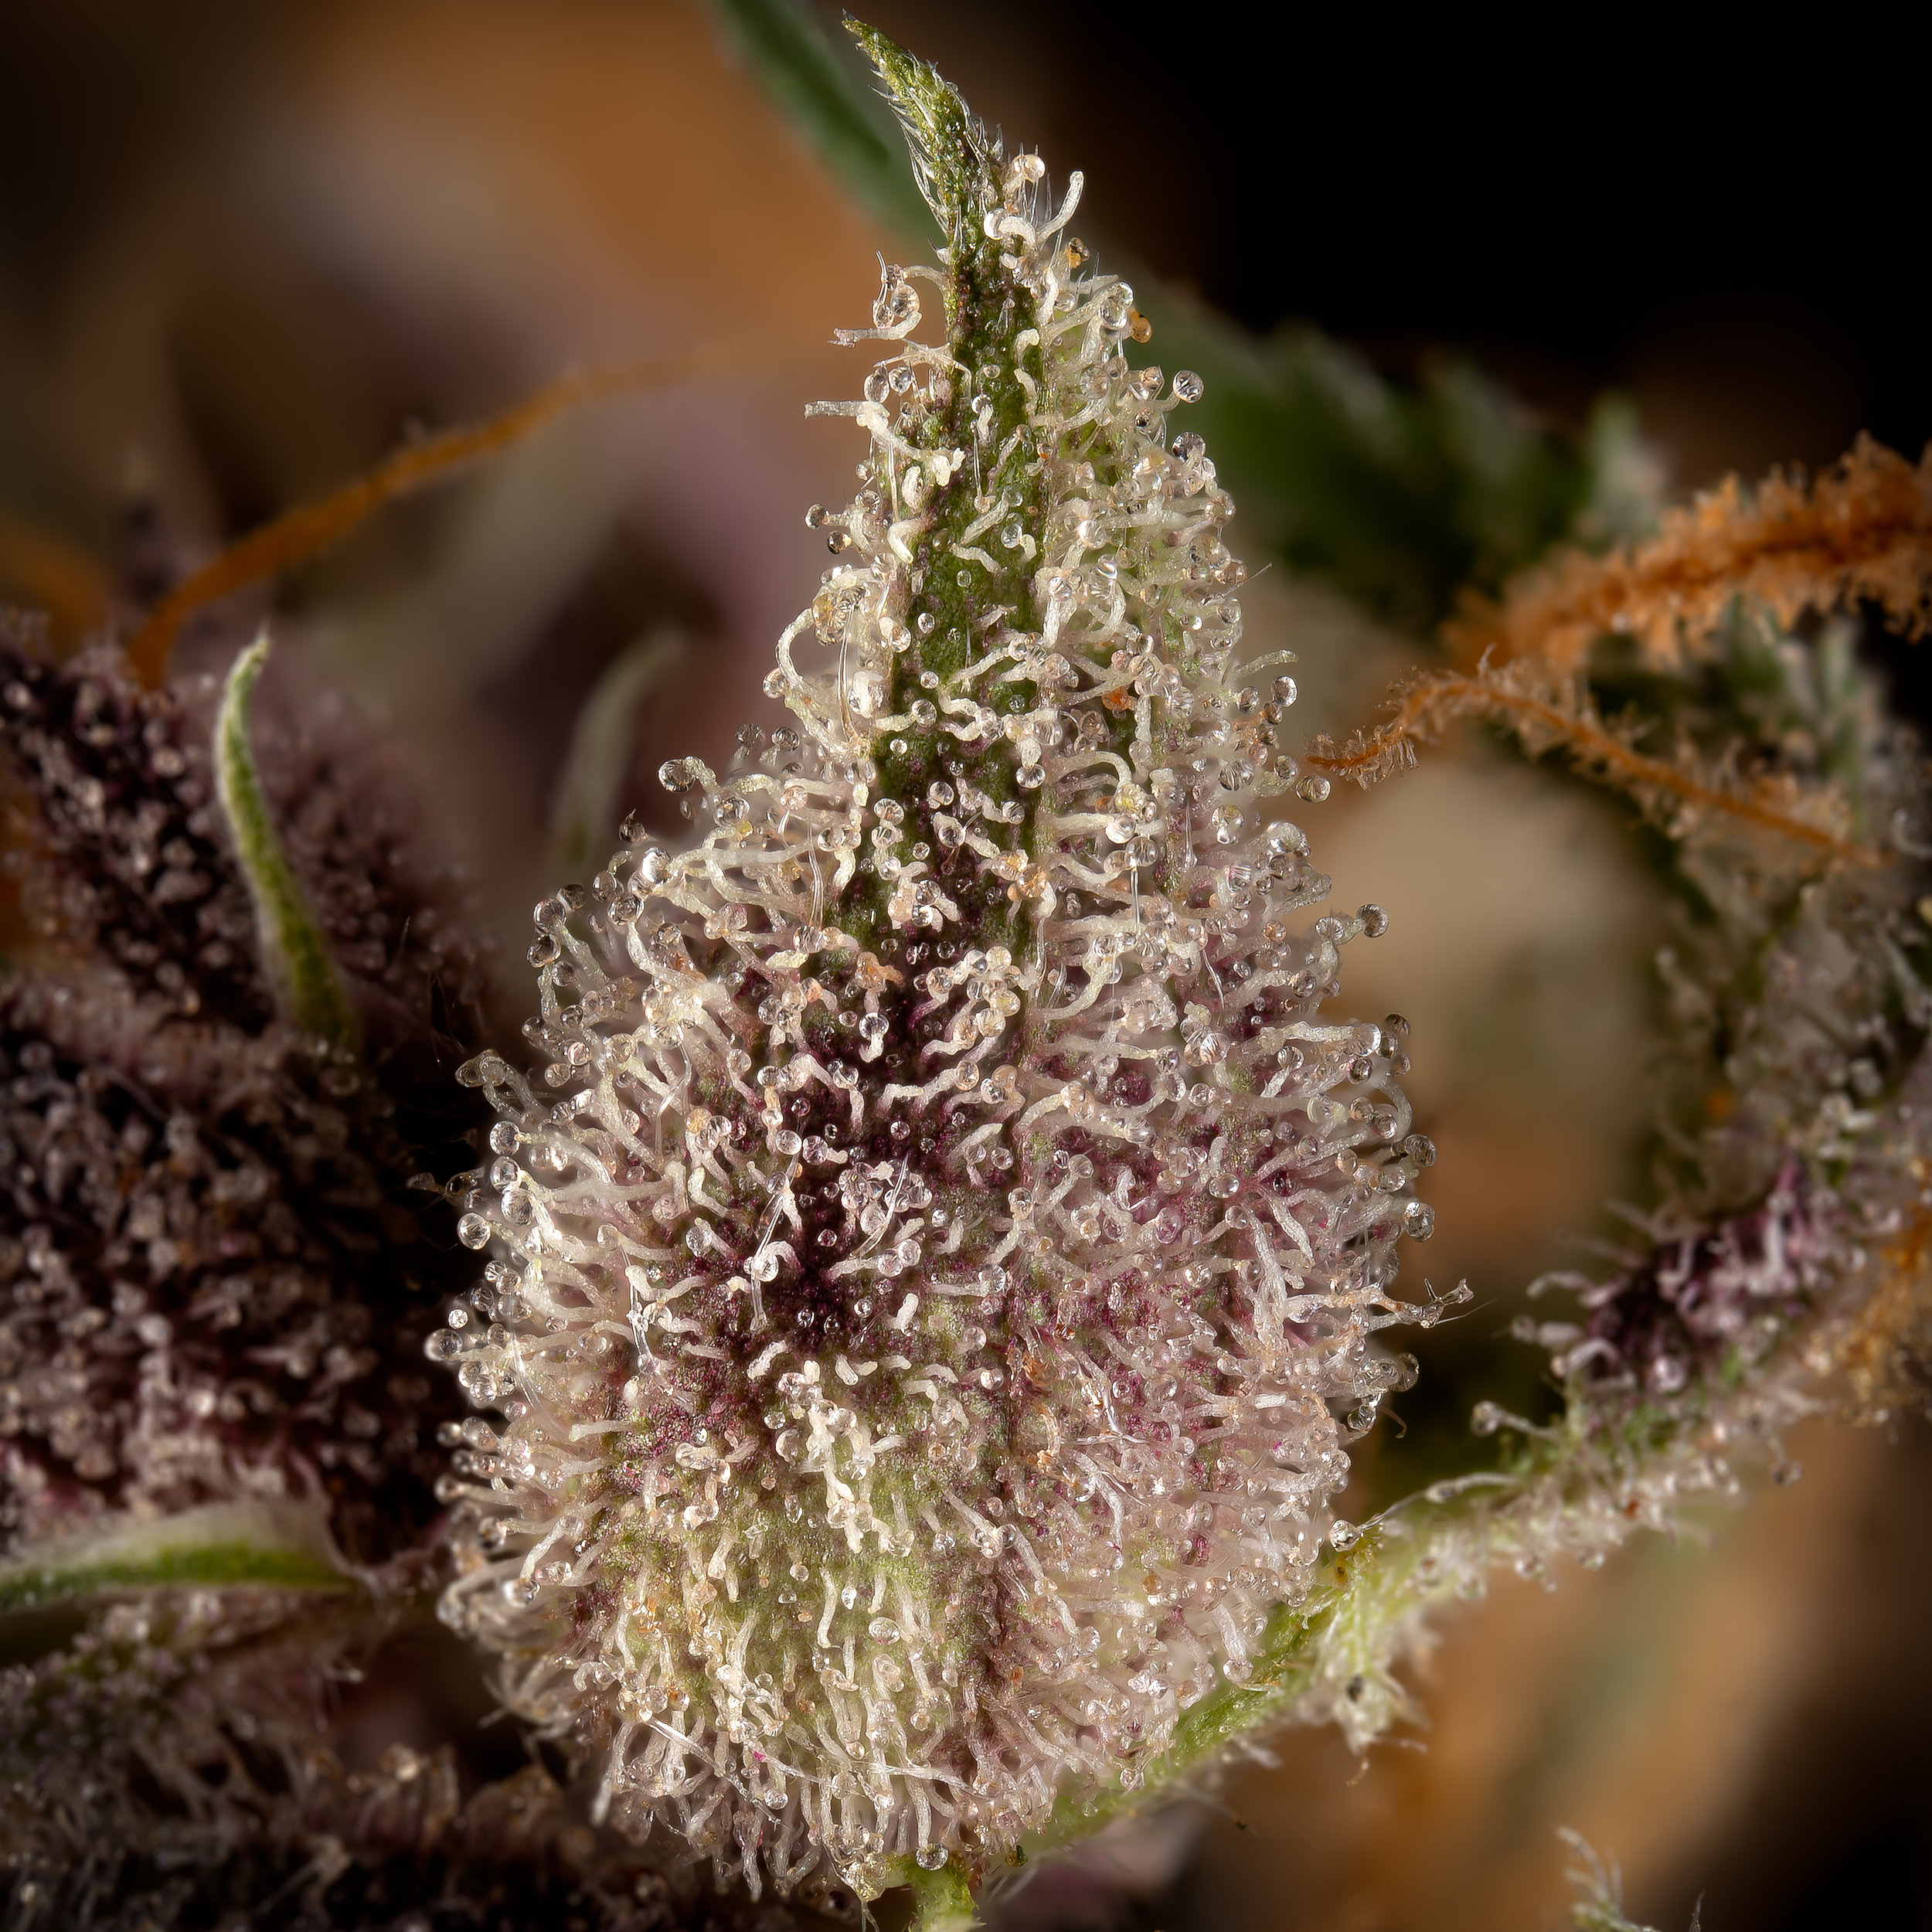 Jackberry trichomes